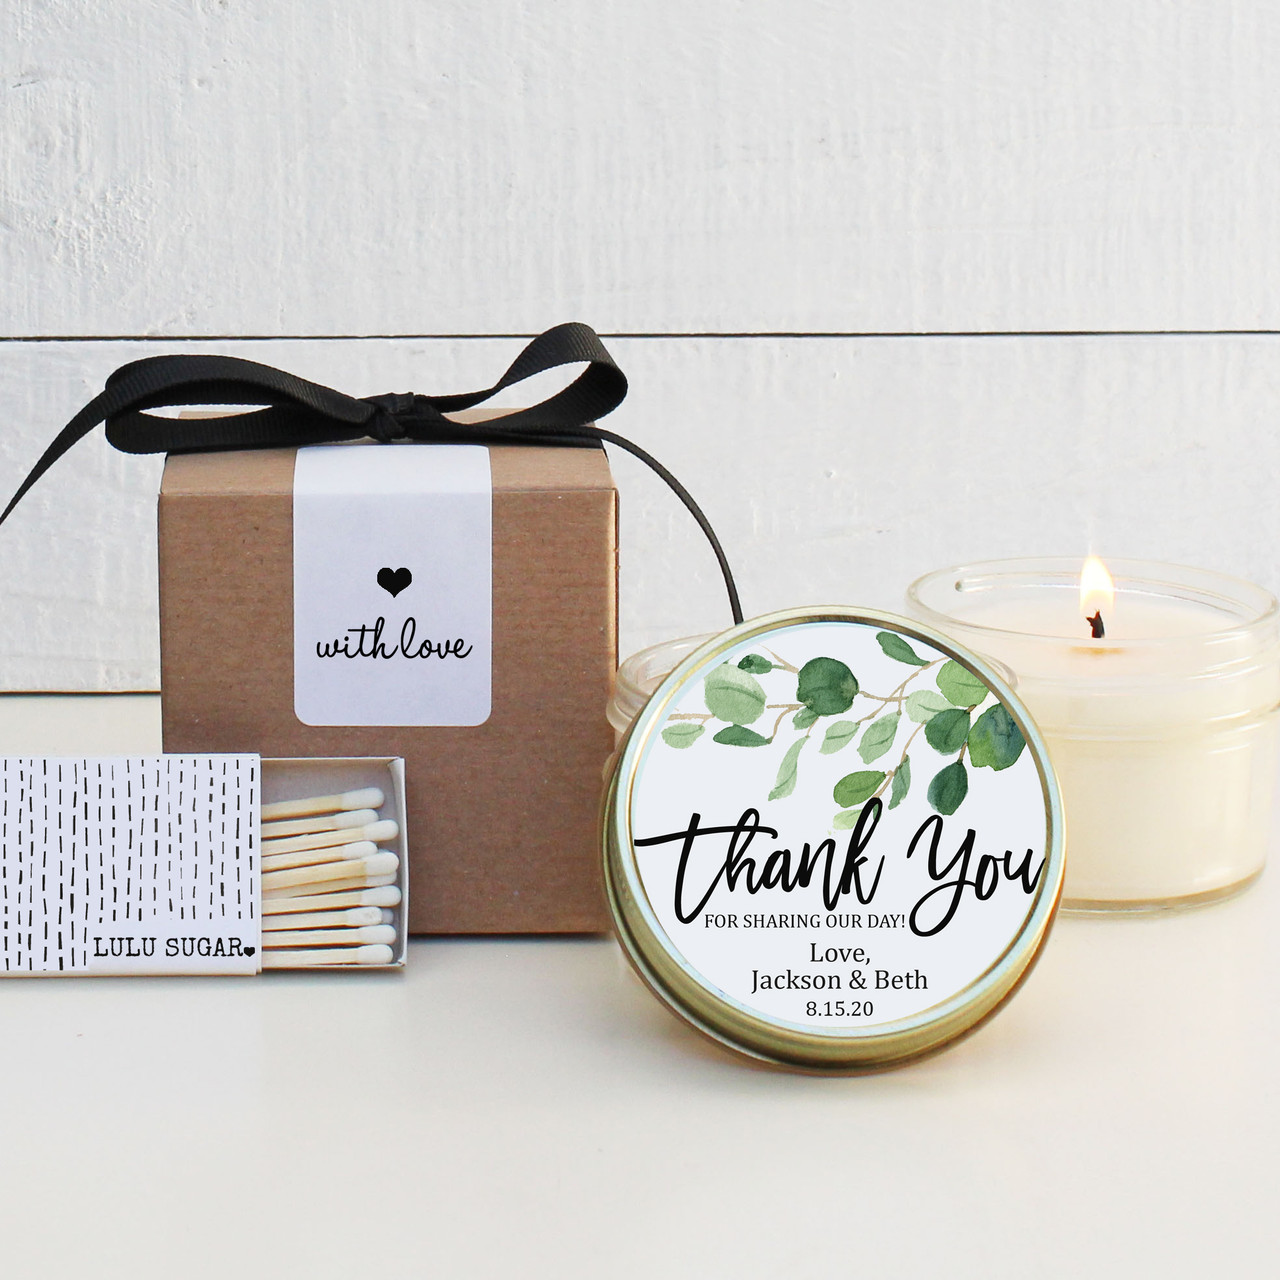 Wedding candle Corporate Candle Client Candle Bespoke candle Personalisation candle Personalised candle Bridal shower gift